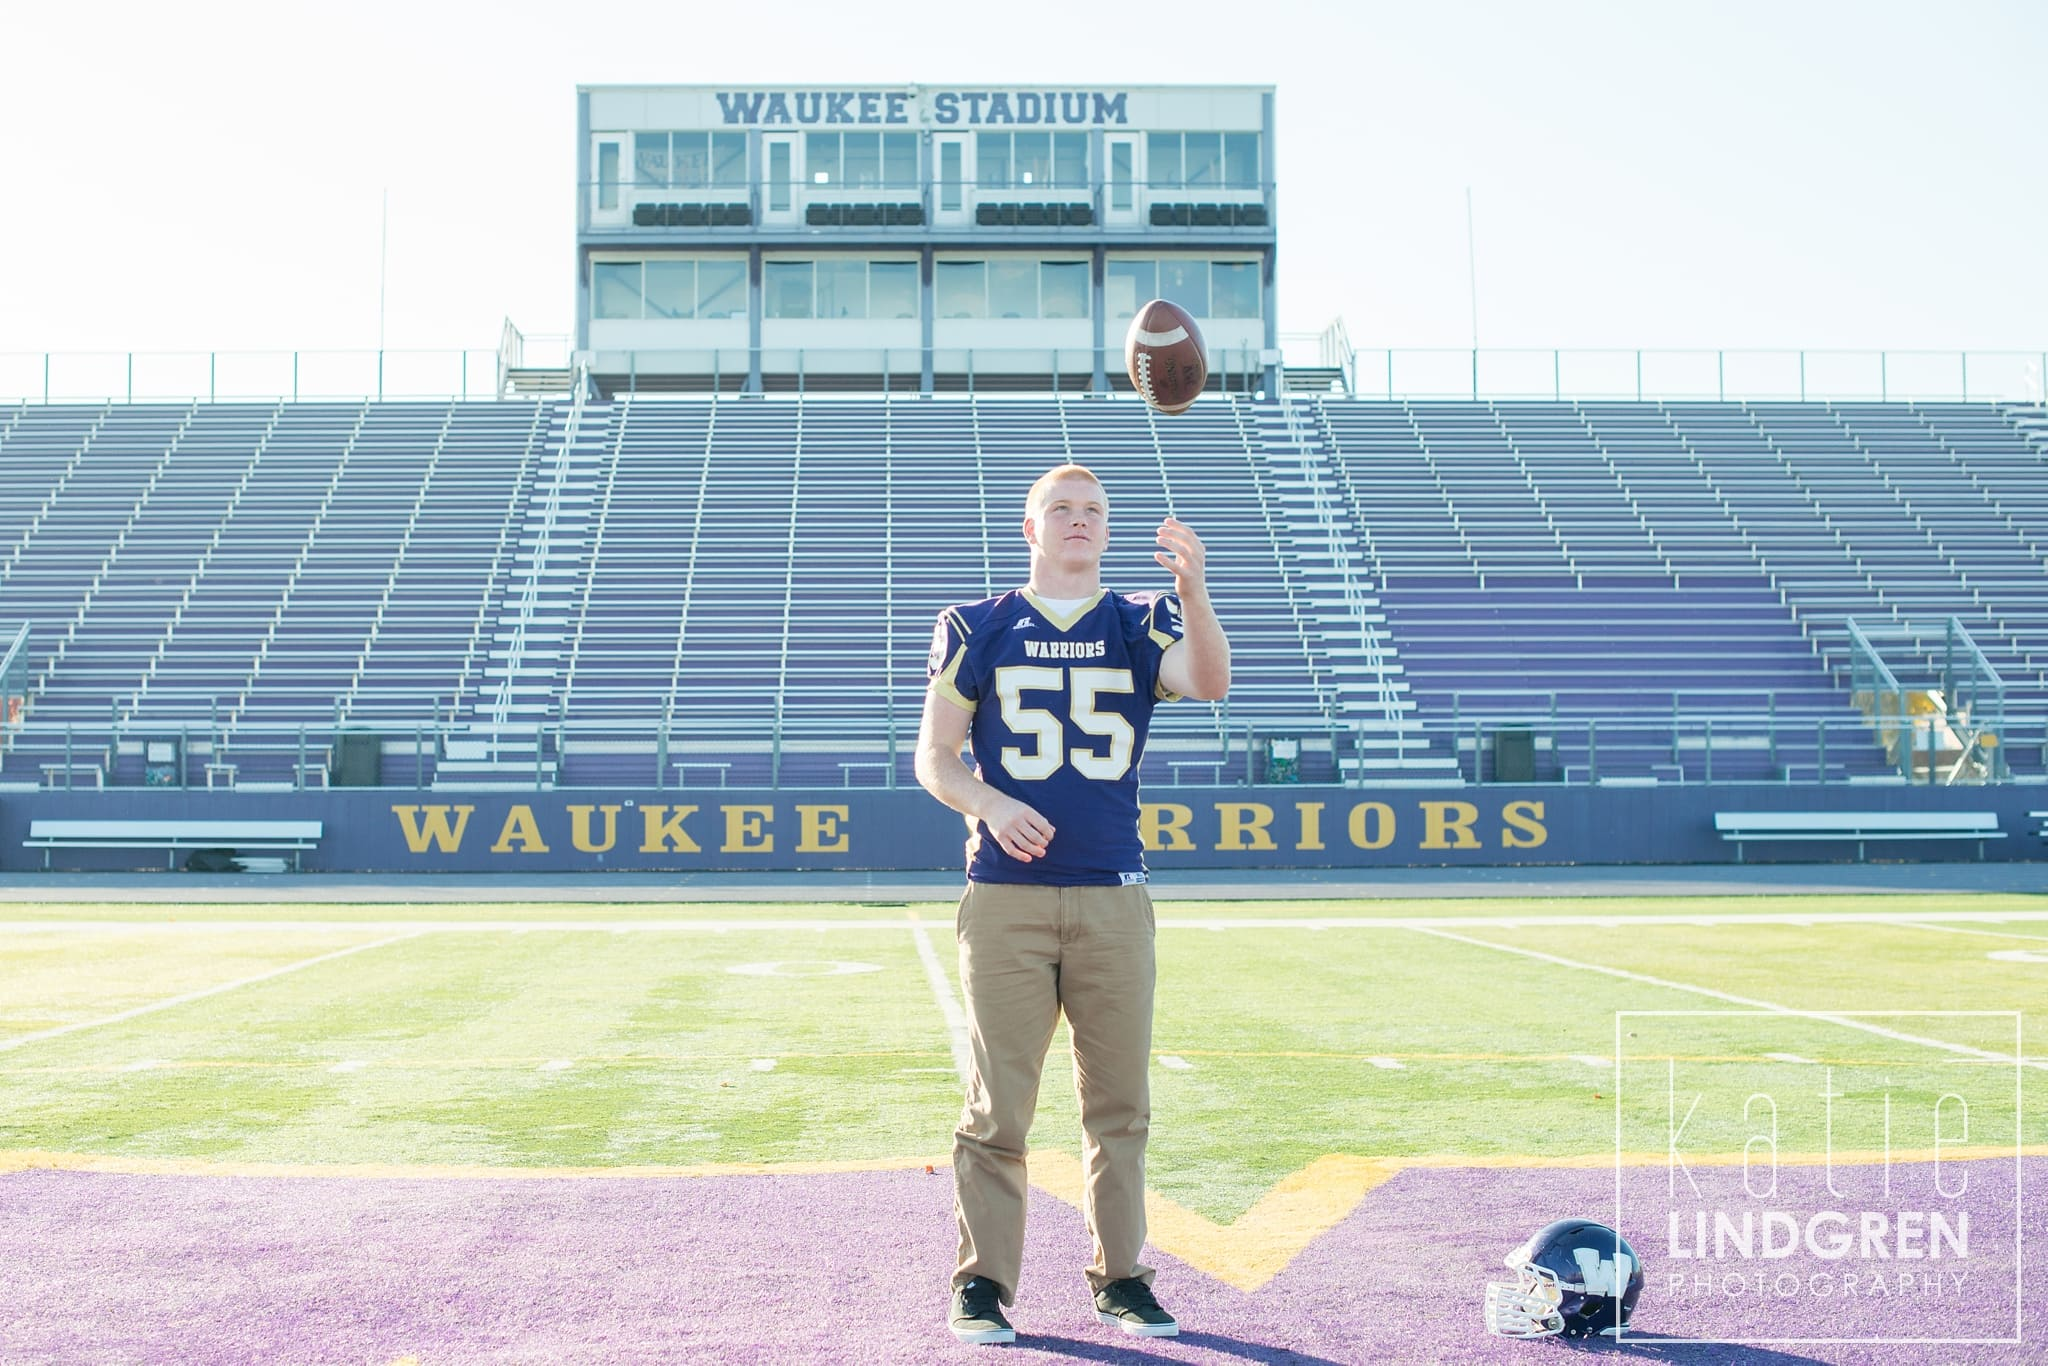 Waukee Senior Photos